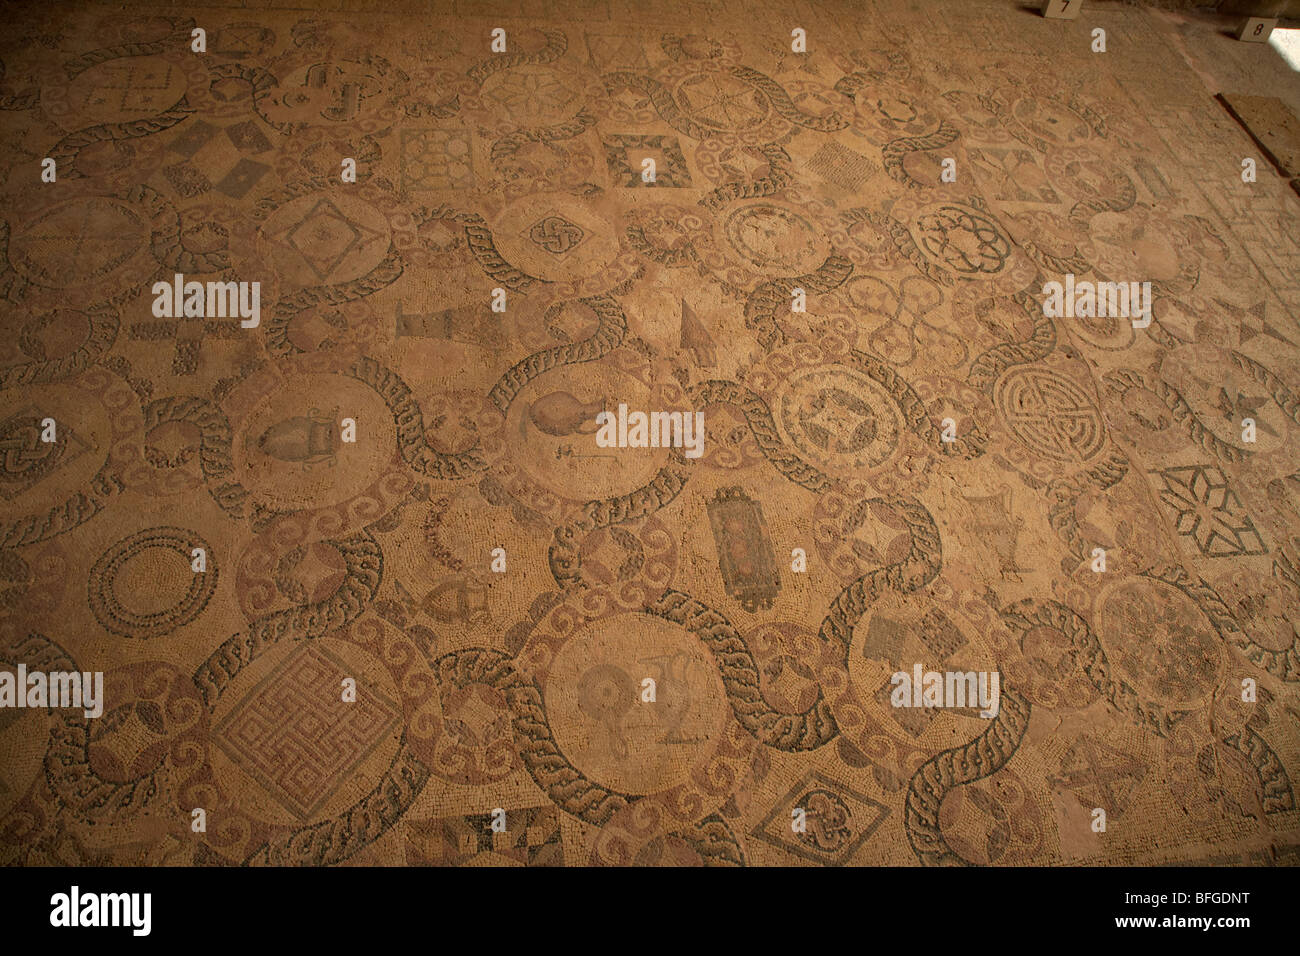 mosaics on the floor of the house of dionysos roman villa at paphos archaeological park republic of cyprus europe - Stock Image